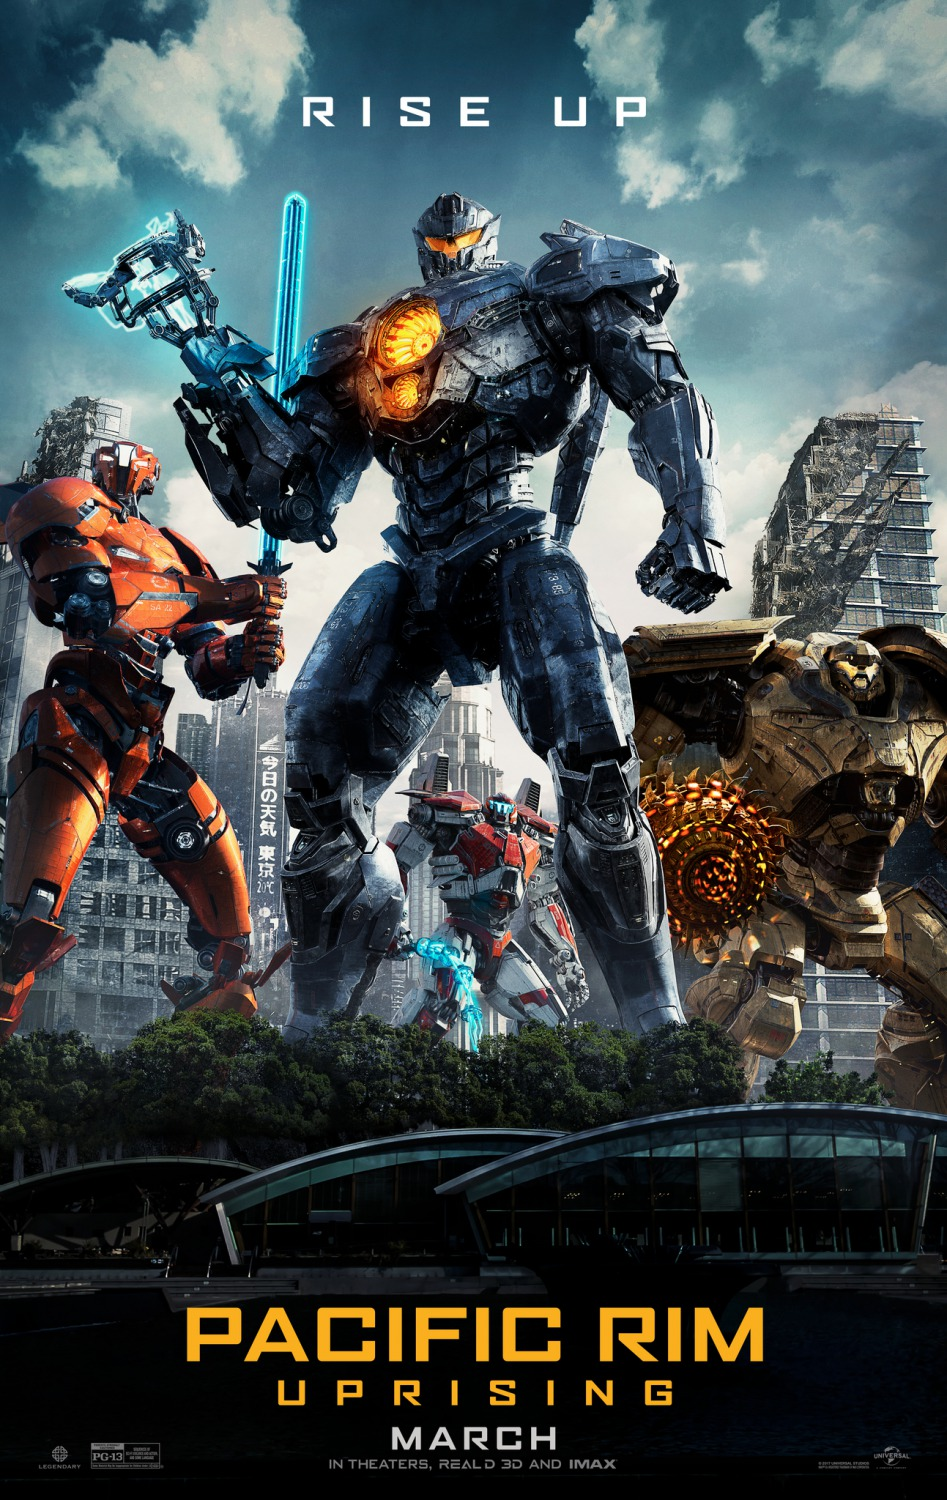 Pacific Rim: Uprising | Pacific Rim Wiki | FANDOM powered by